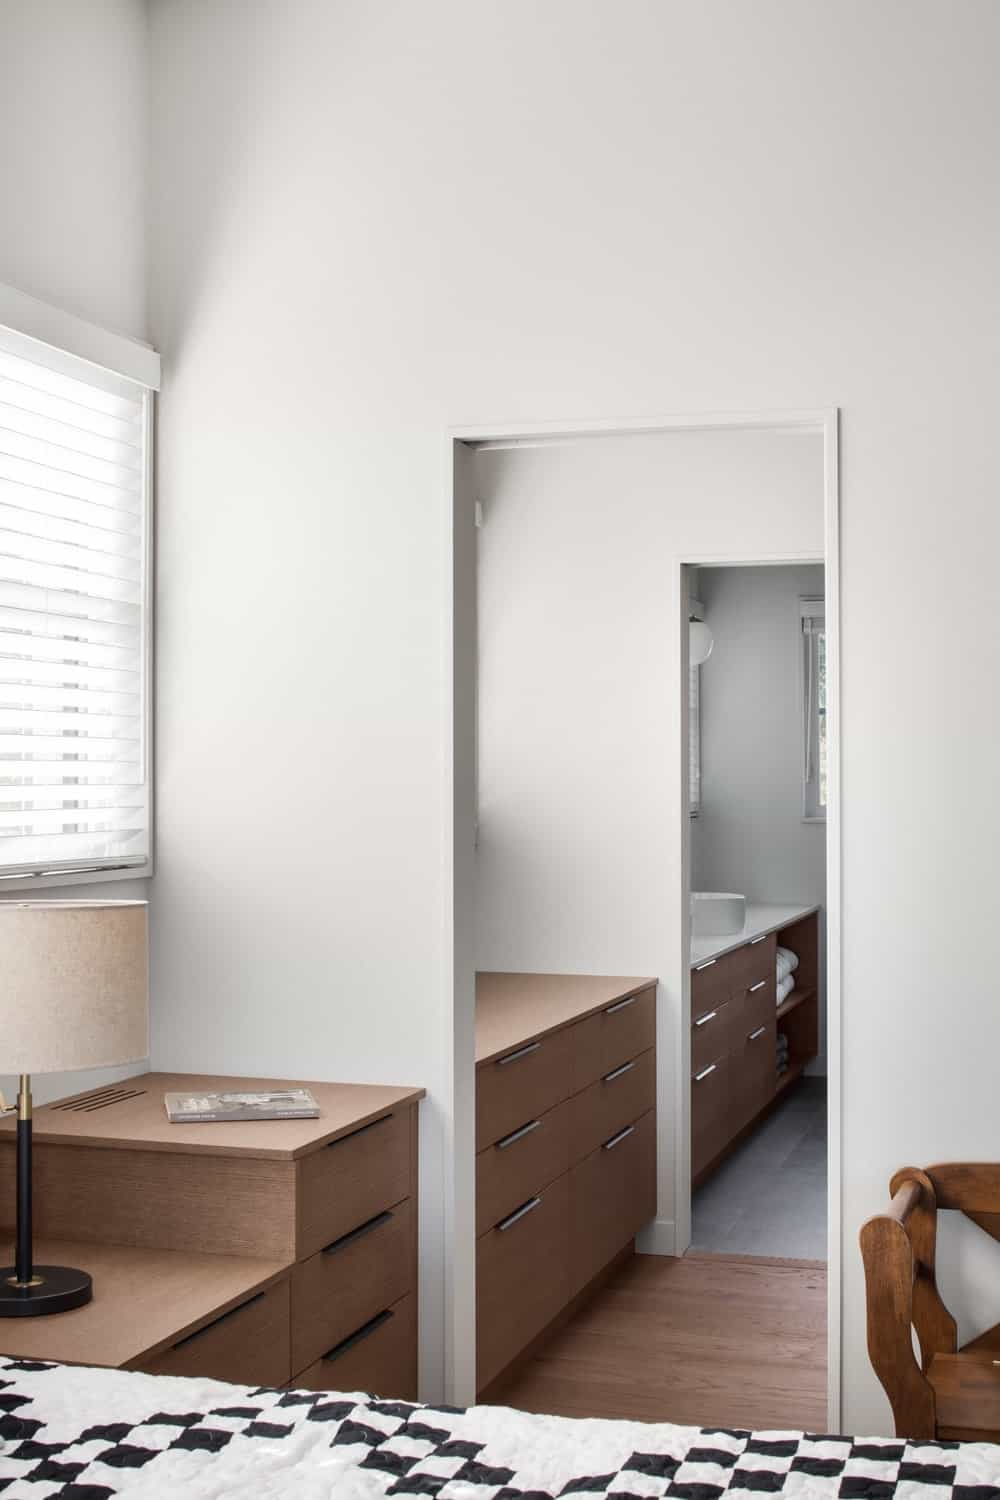 There's a hallway from the bedroom leading to the bathroom. Photo credit: Adrien Williams